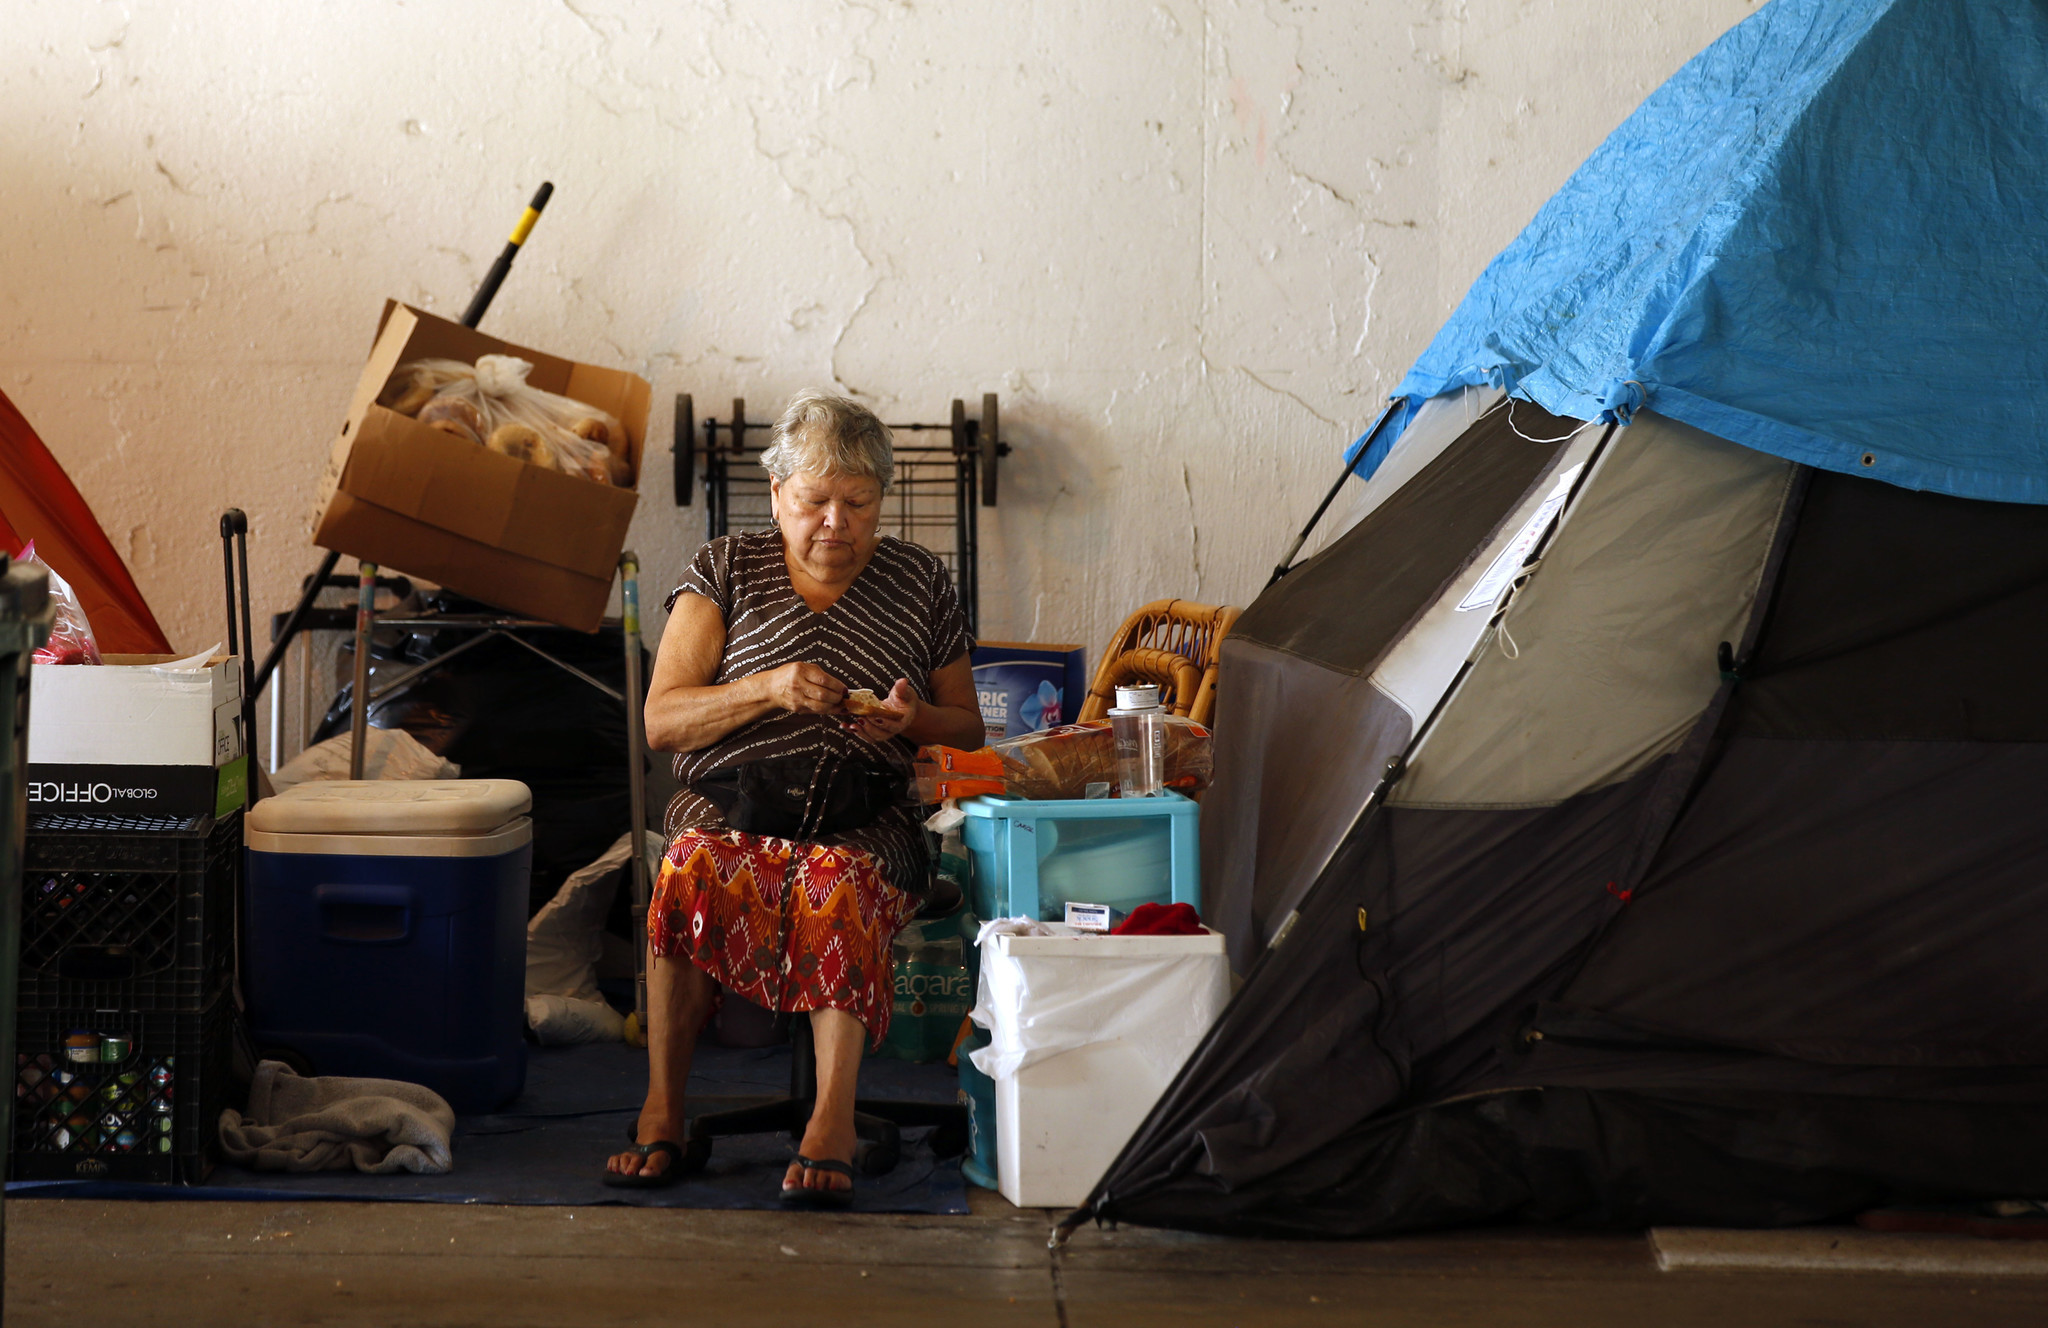 buy popular b067b 6437e Homeless advocacy group seeks to stop eviction of Uptown tent city